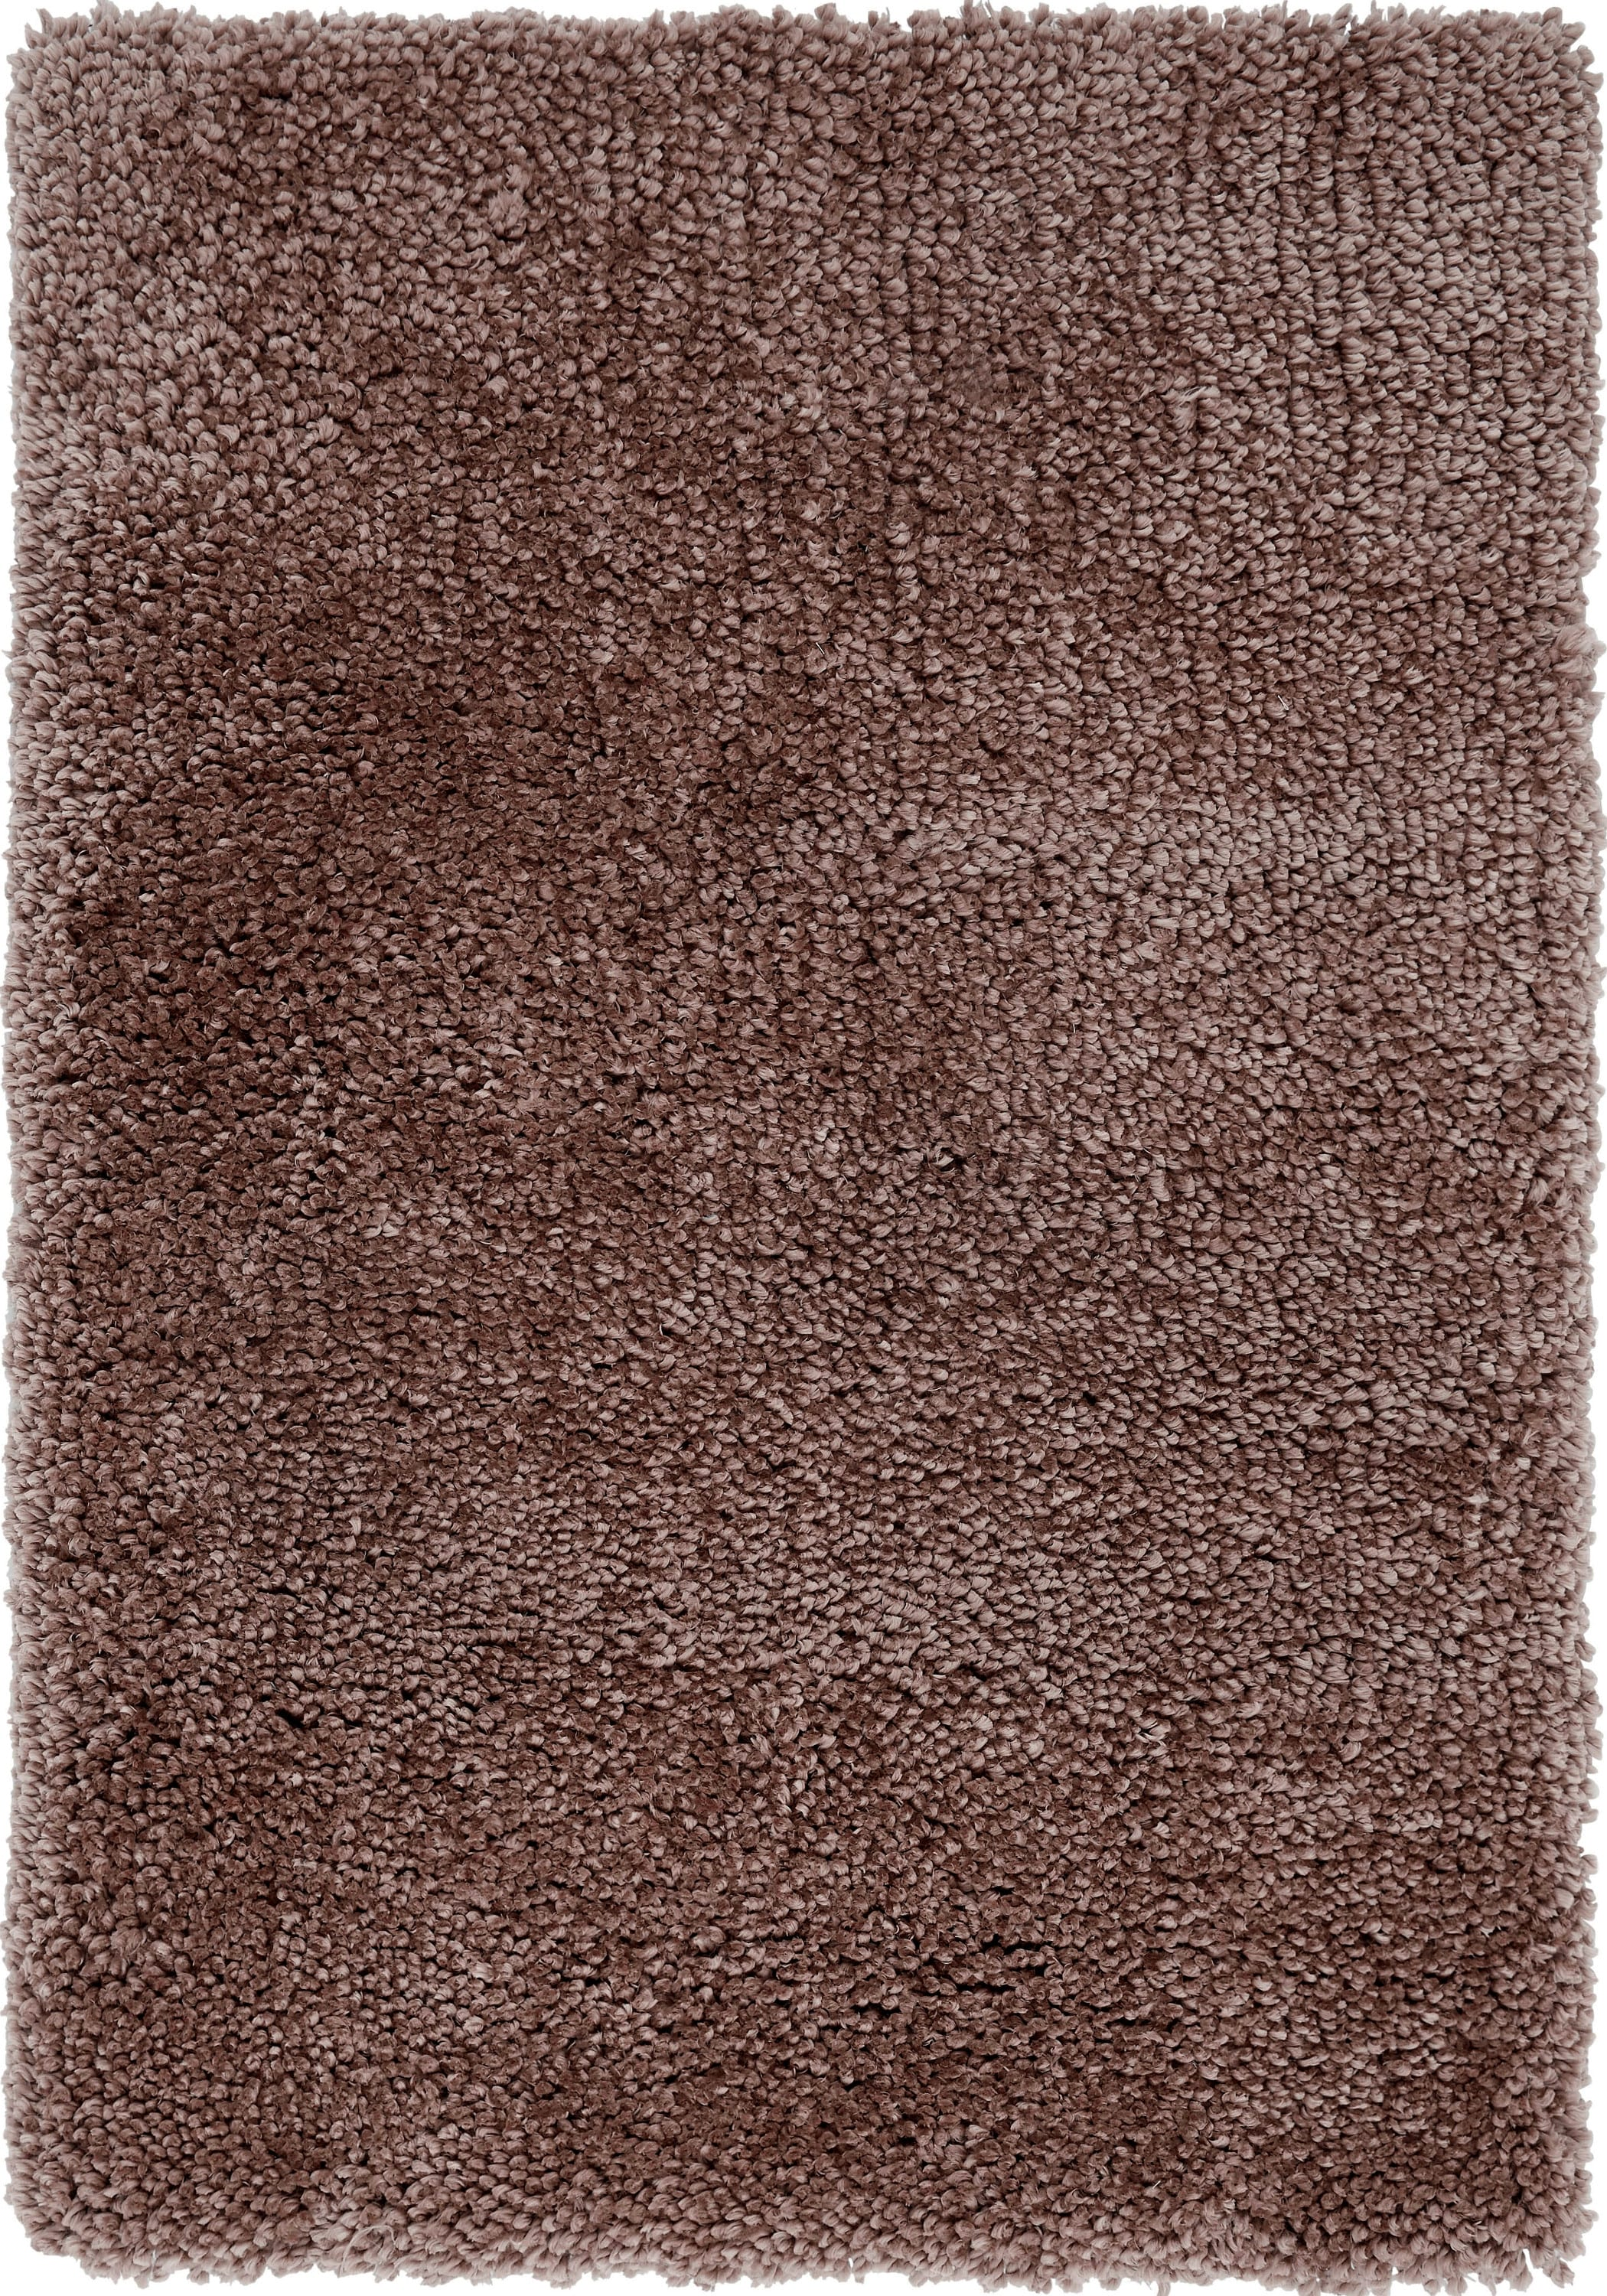 Spiral Rug By Asiatic Carpets Colour Caramel Rugs Uk